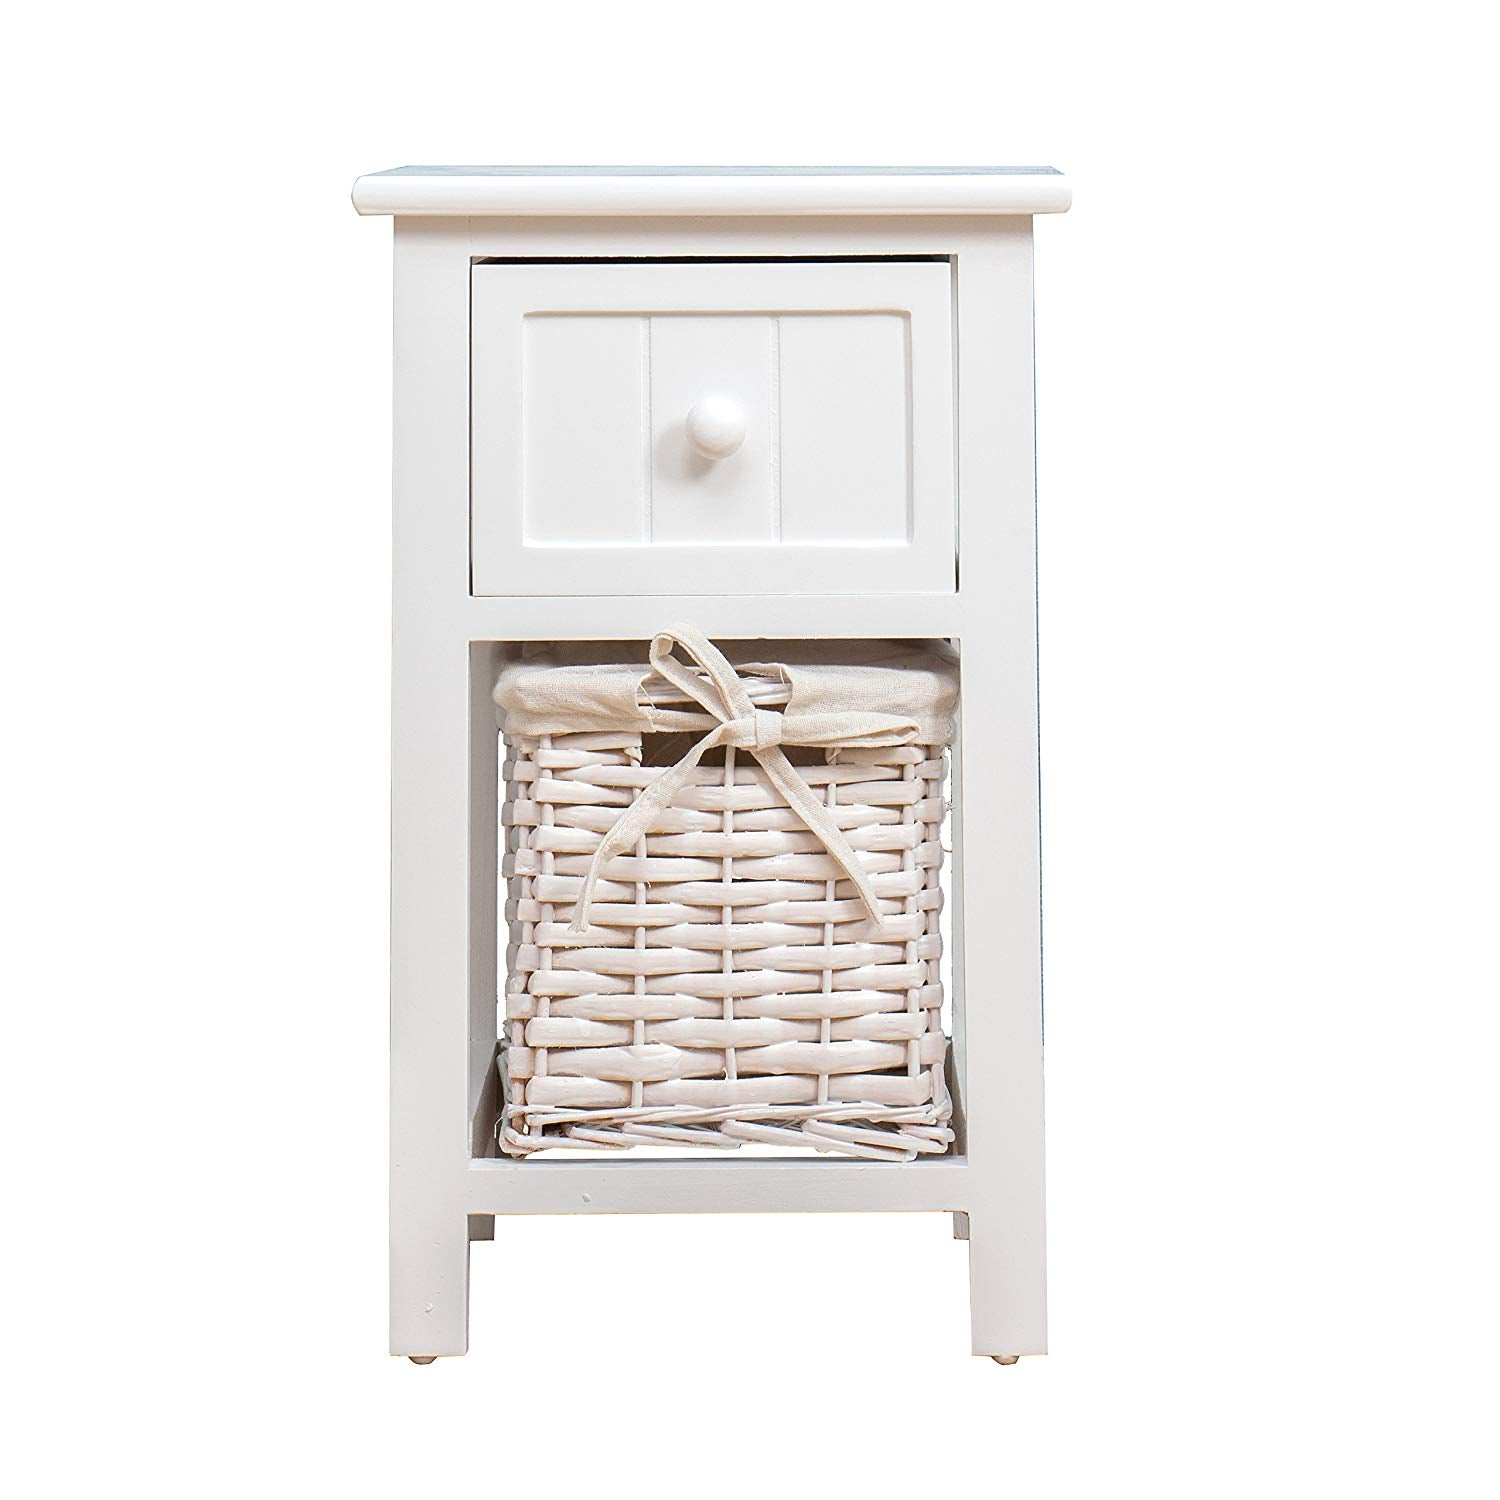 Picture of: White Wood Bedside Table With 1 Drawer 1 Wicker Basket Storage Shop Designer Home Furnishings